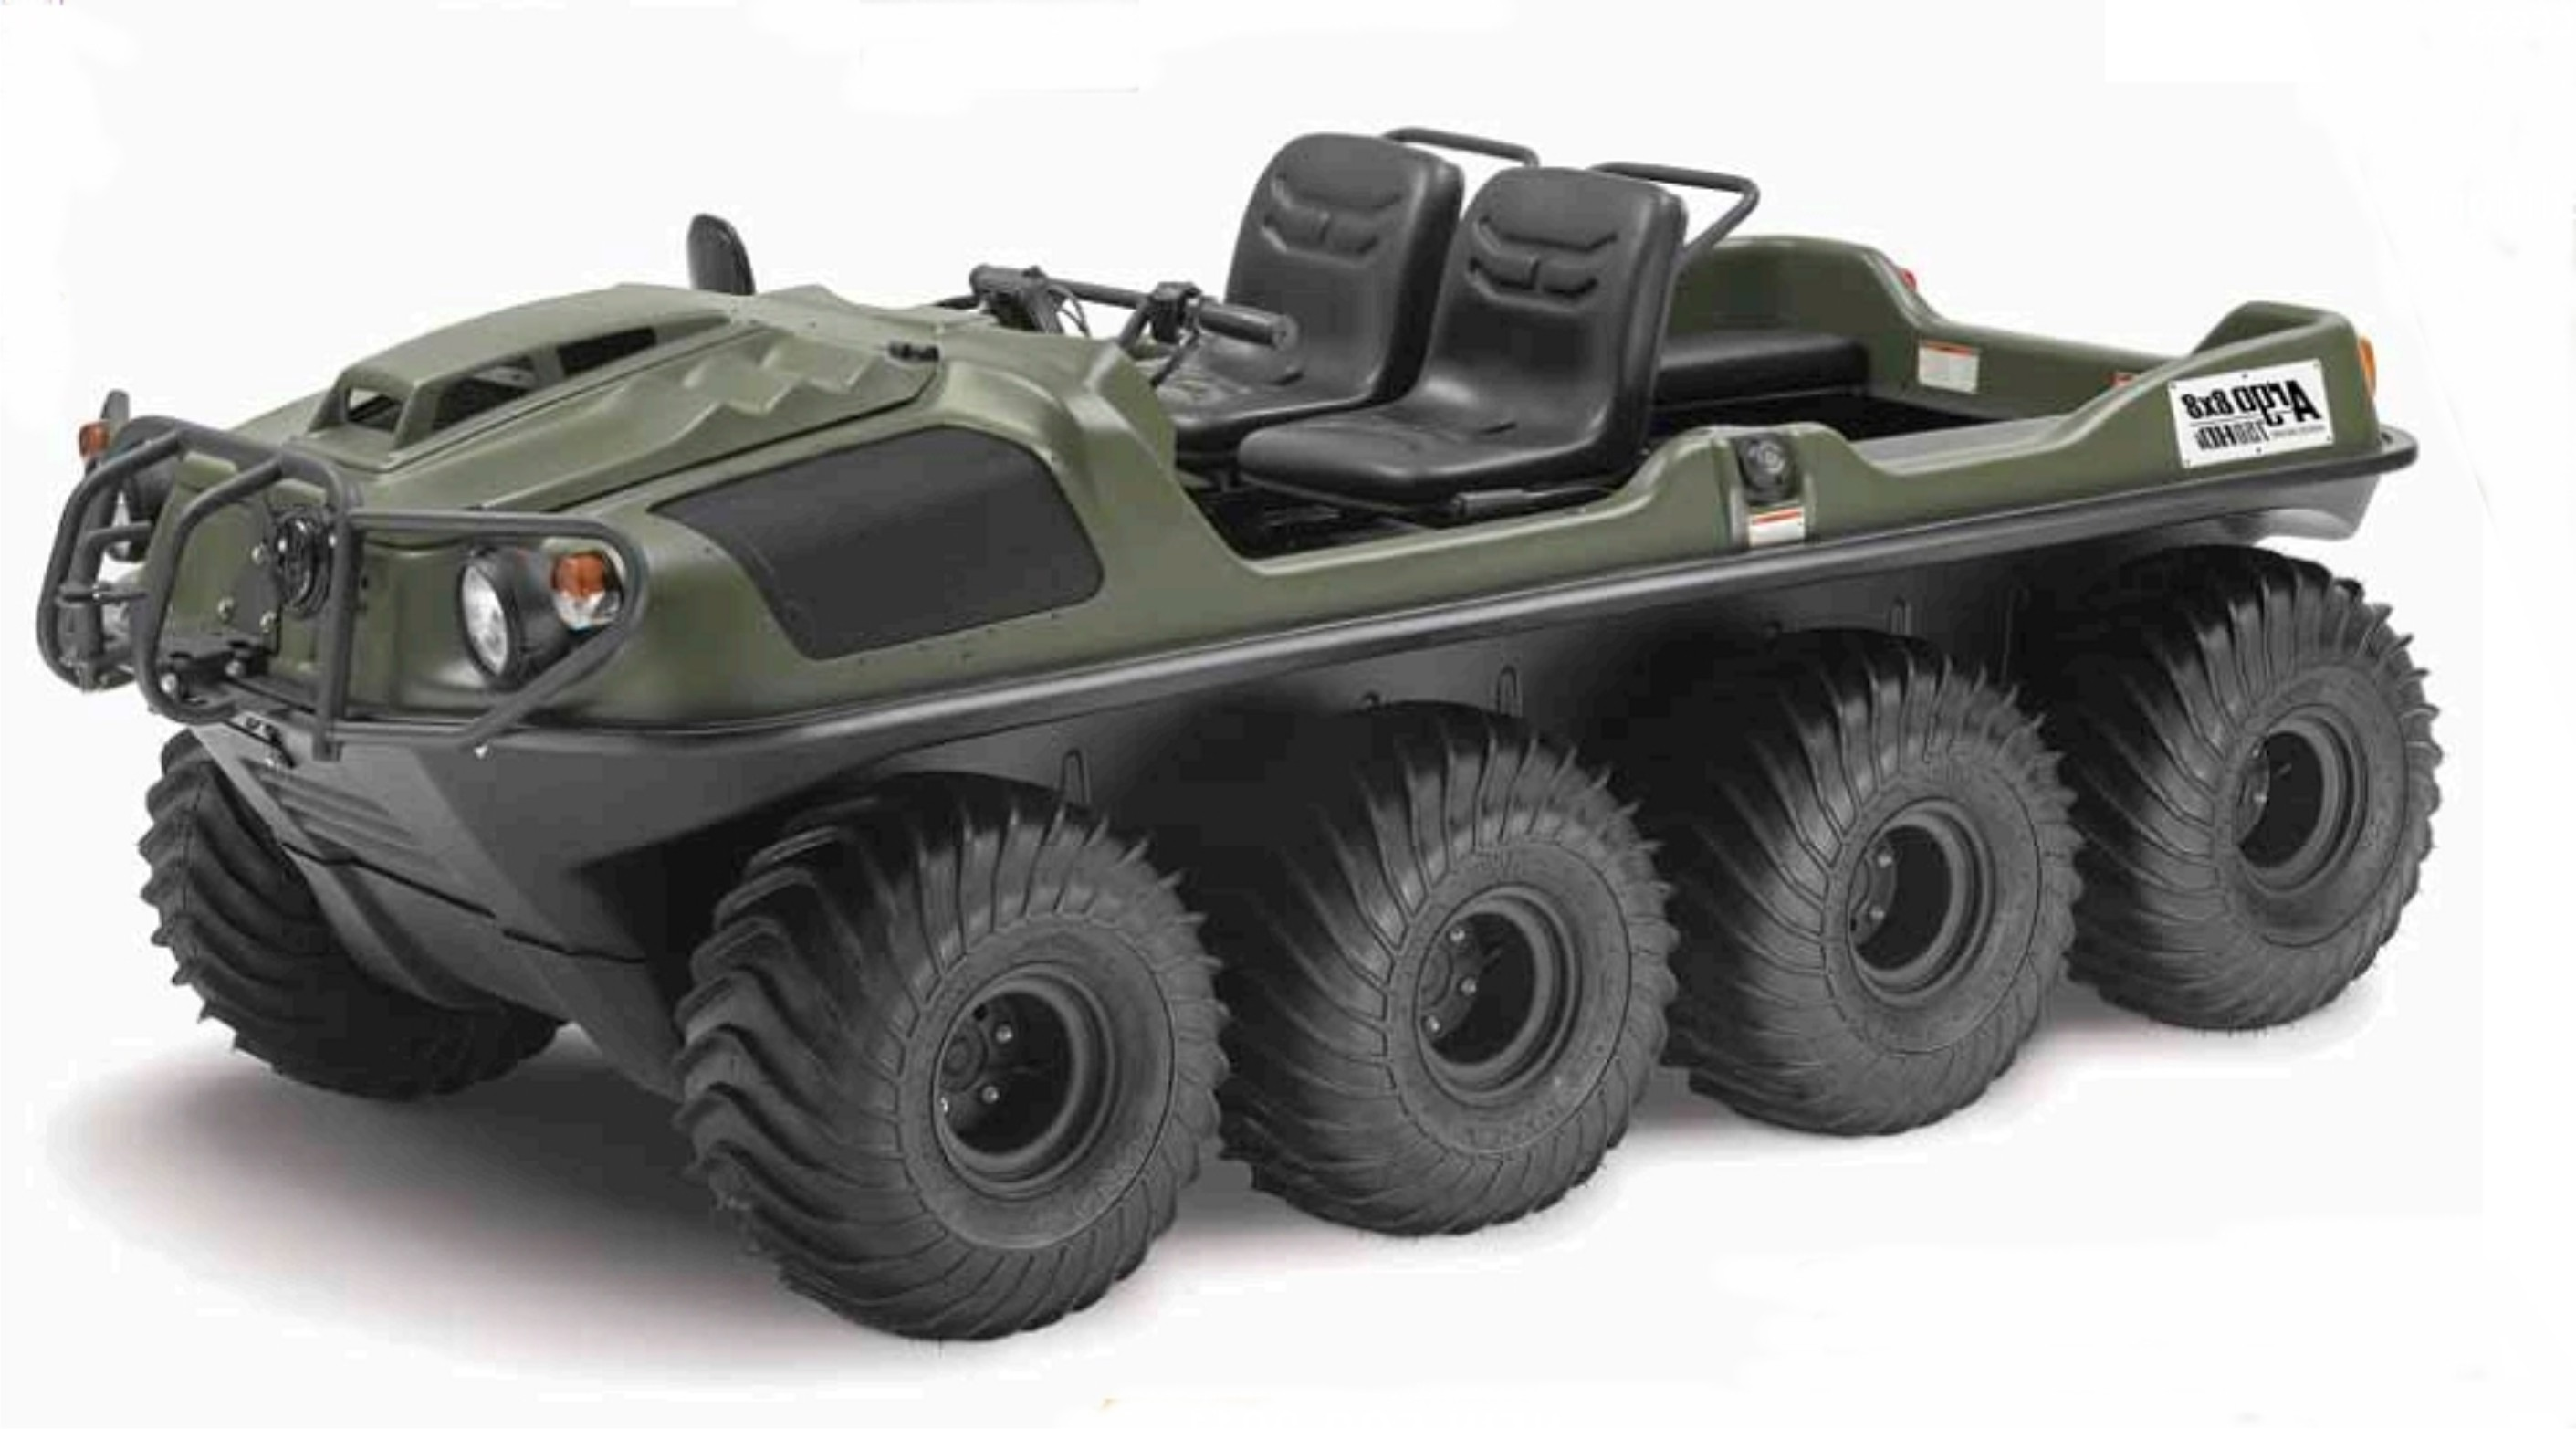 best rc all terrain vehicle with Argo Atv 8x8 Avenger on Lifted 2016 Platinum F250 together with Trex Robotic Lawn Mower Is The Big Daddy Of Them All as well Panther Watercar Worlds Fastest  hibious Vehicle moreover Argo Atv 8x8 Avenger in addition Bufalino One Person C er By Cornelius  anns.